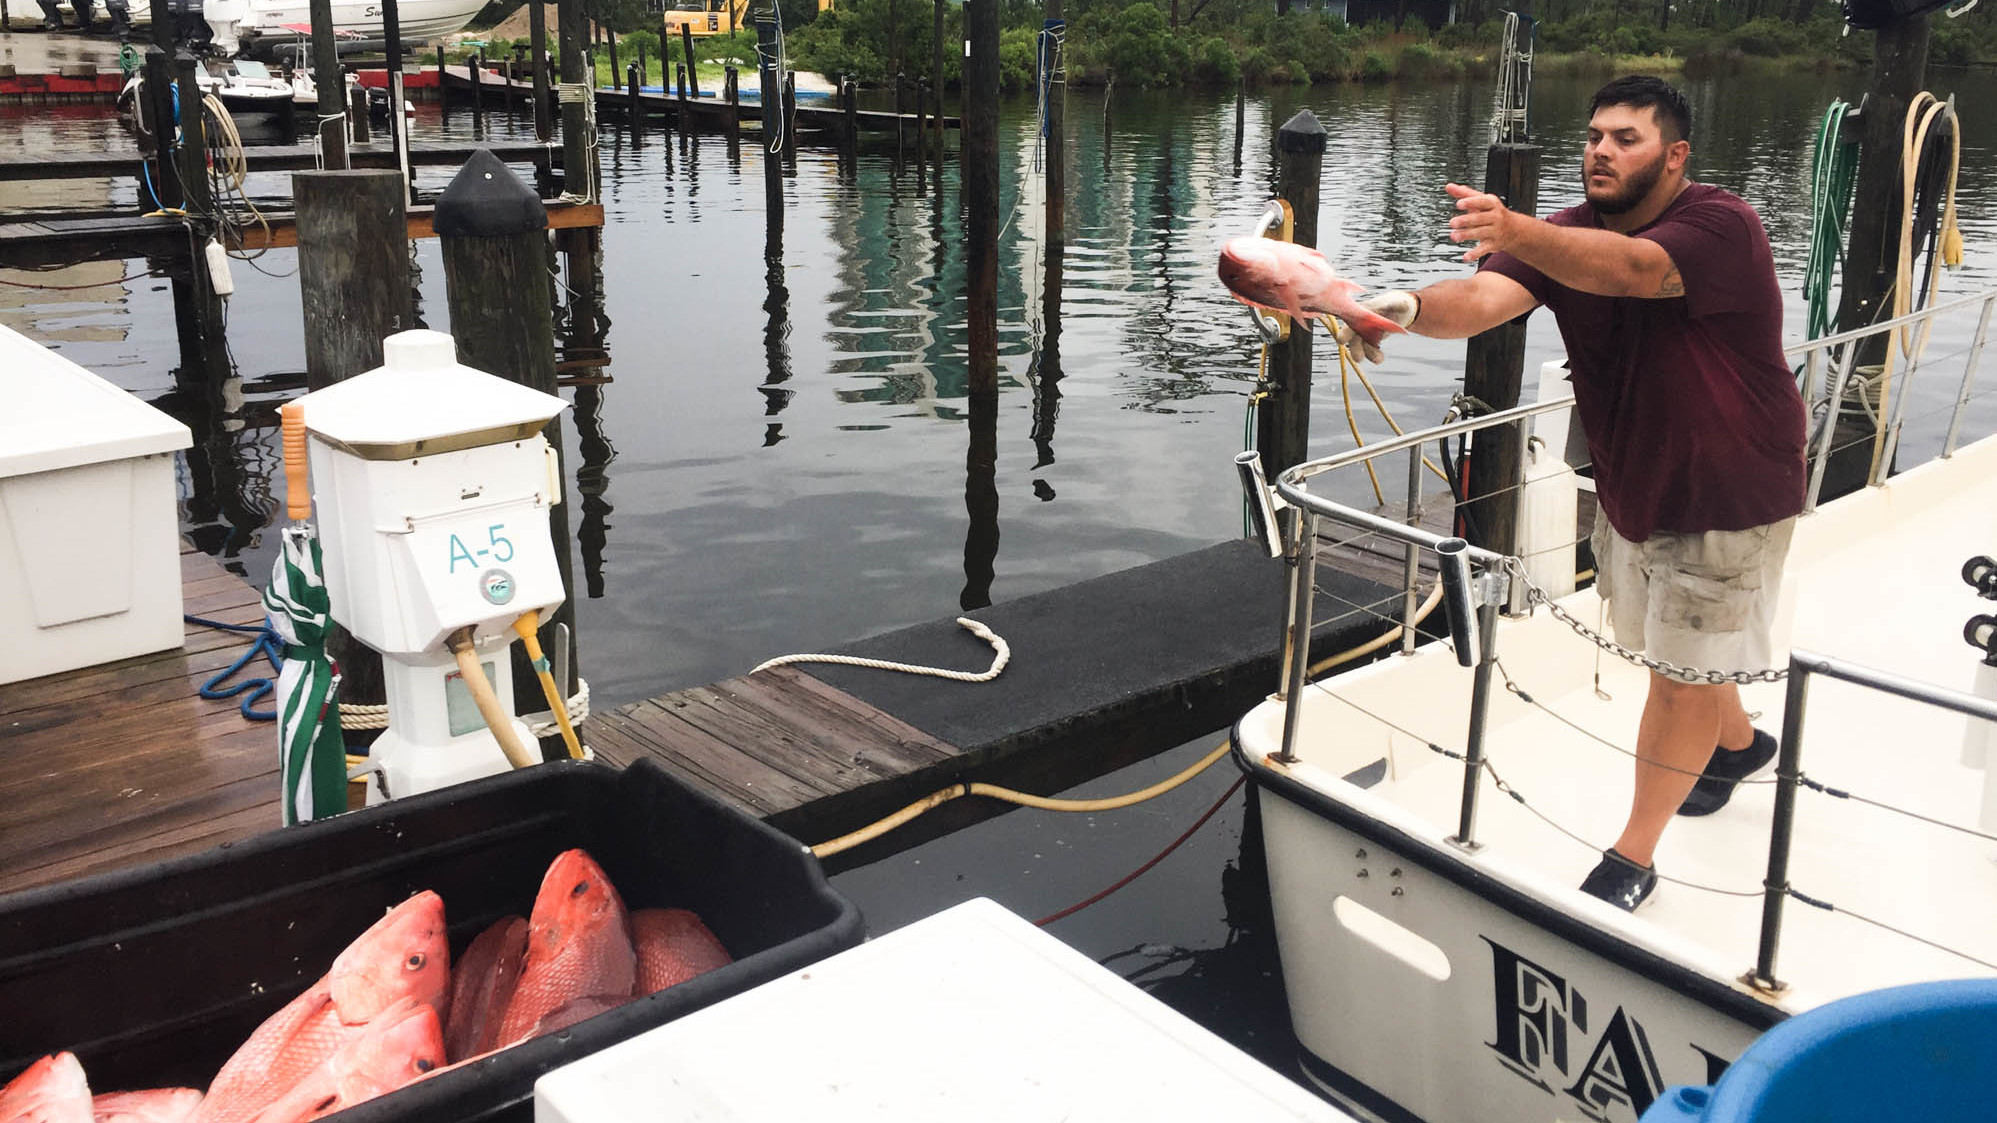 Deckhand Patrick Gallager tosses the day's catch to the dock from the Fairwater Two charter boat. (Debbie Elliott/NPR)